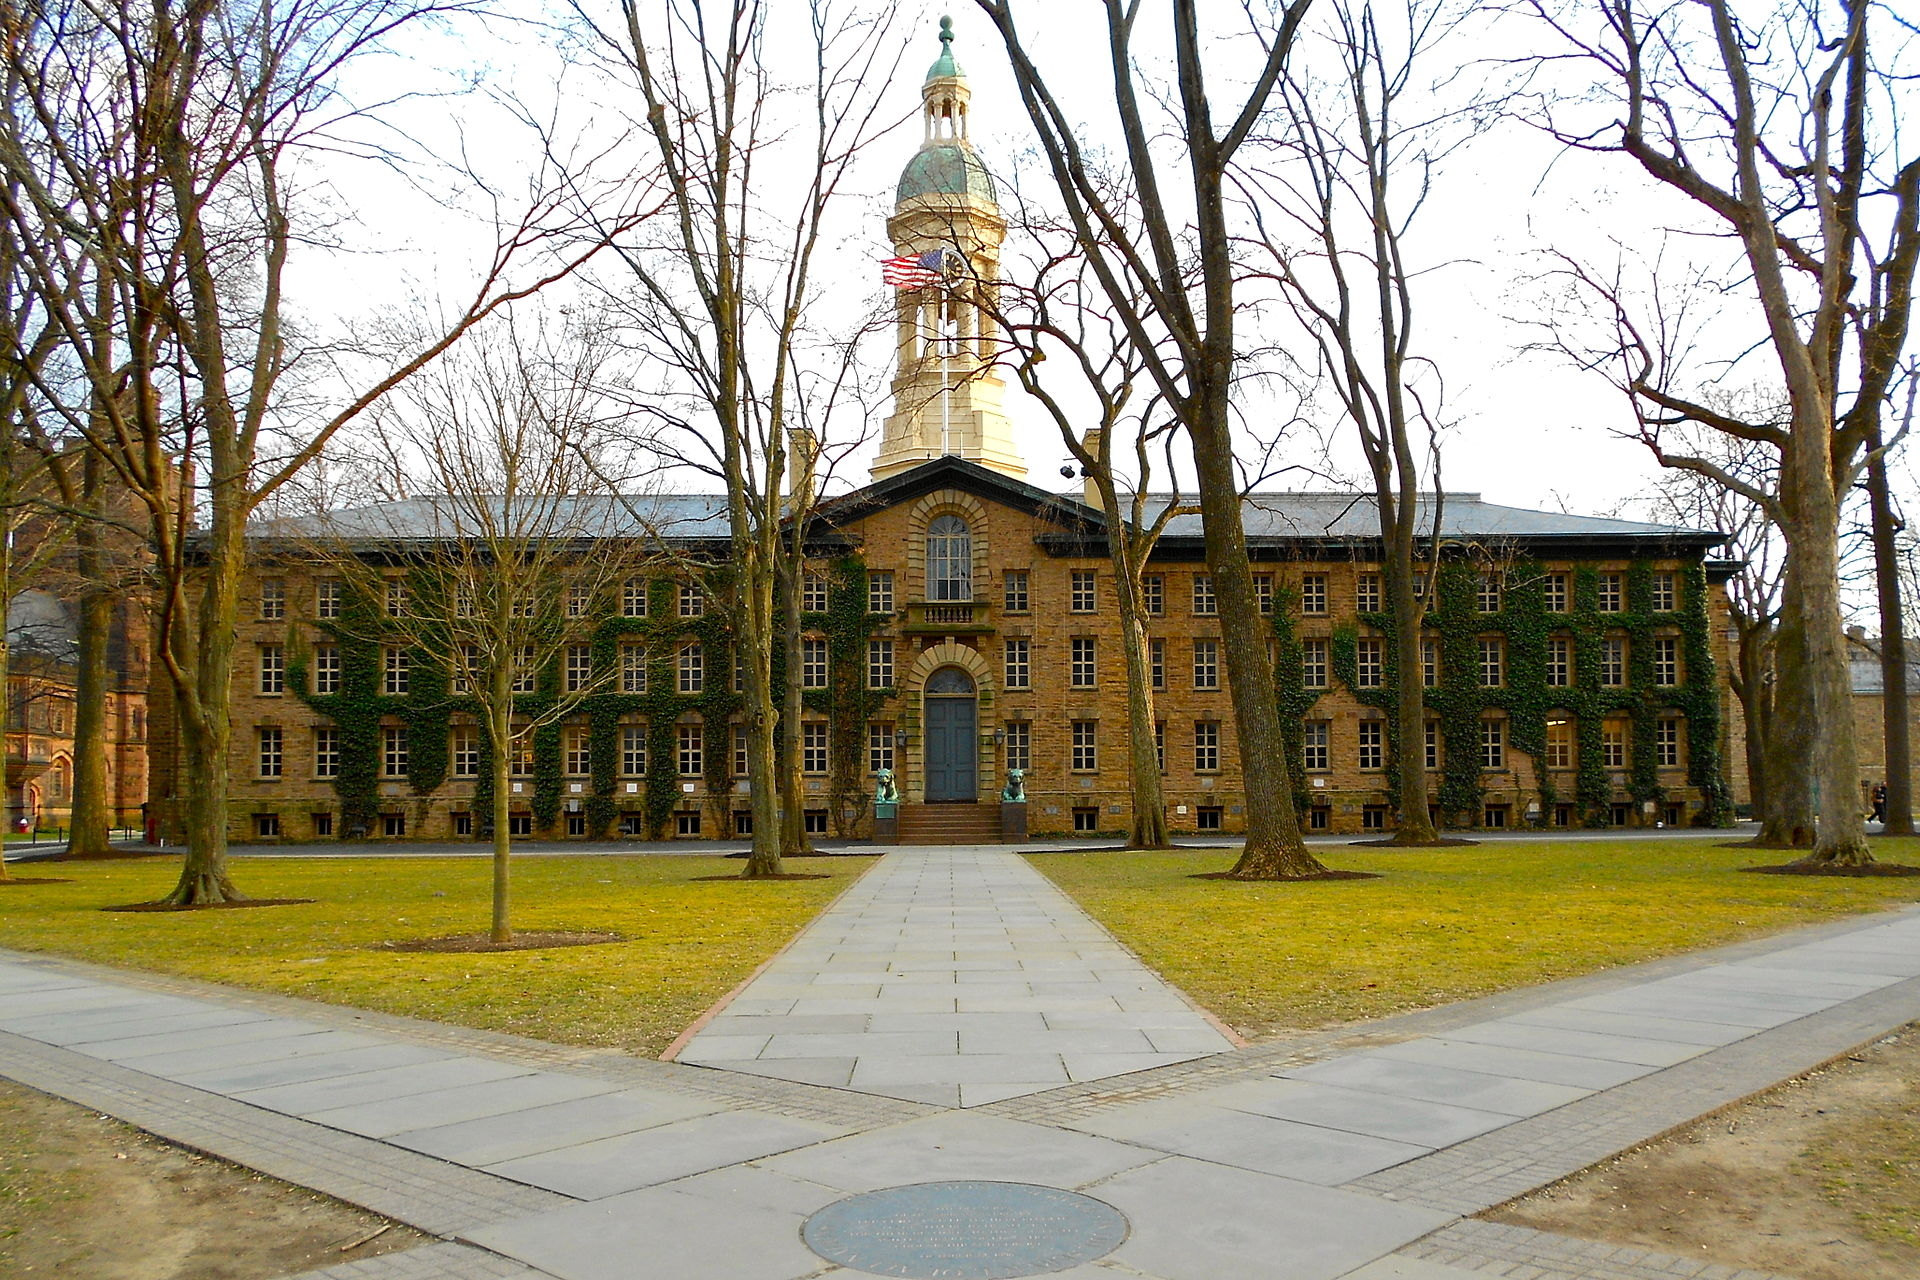 Built in 1756, Nassau Hall is Princeton's most historic building and a National Historic Landmark.